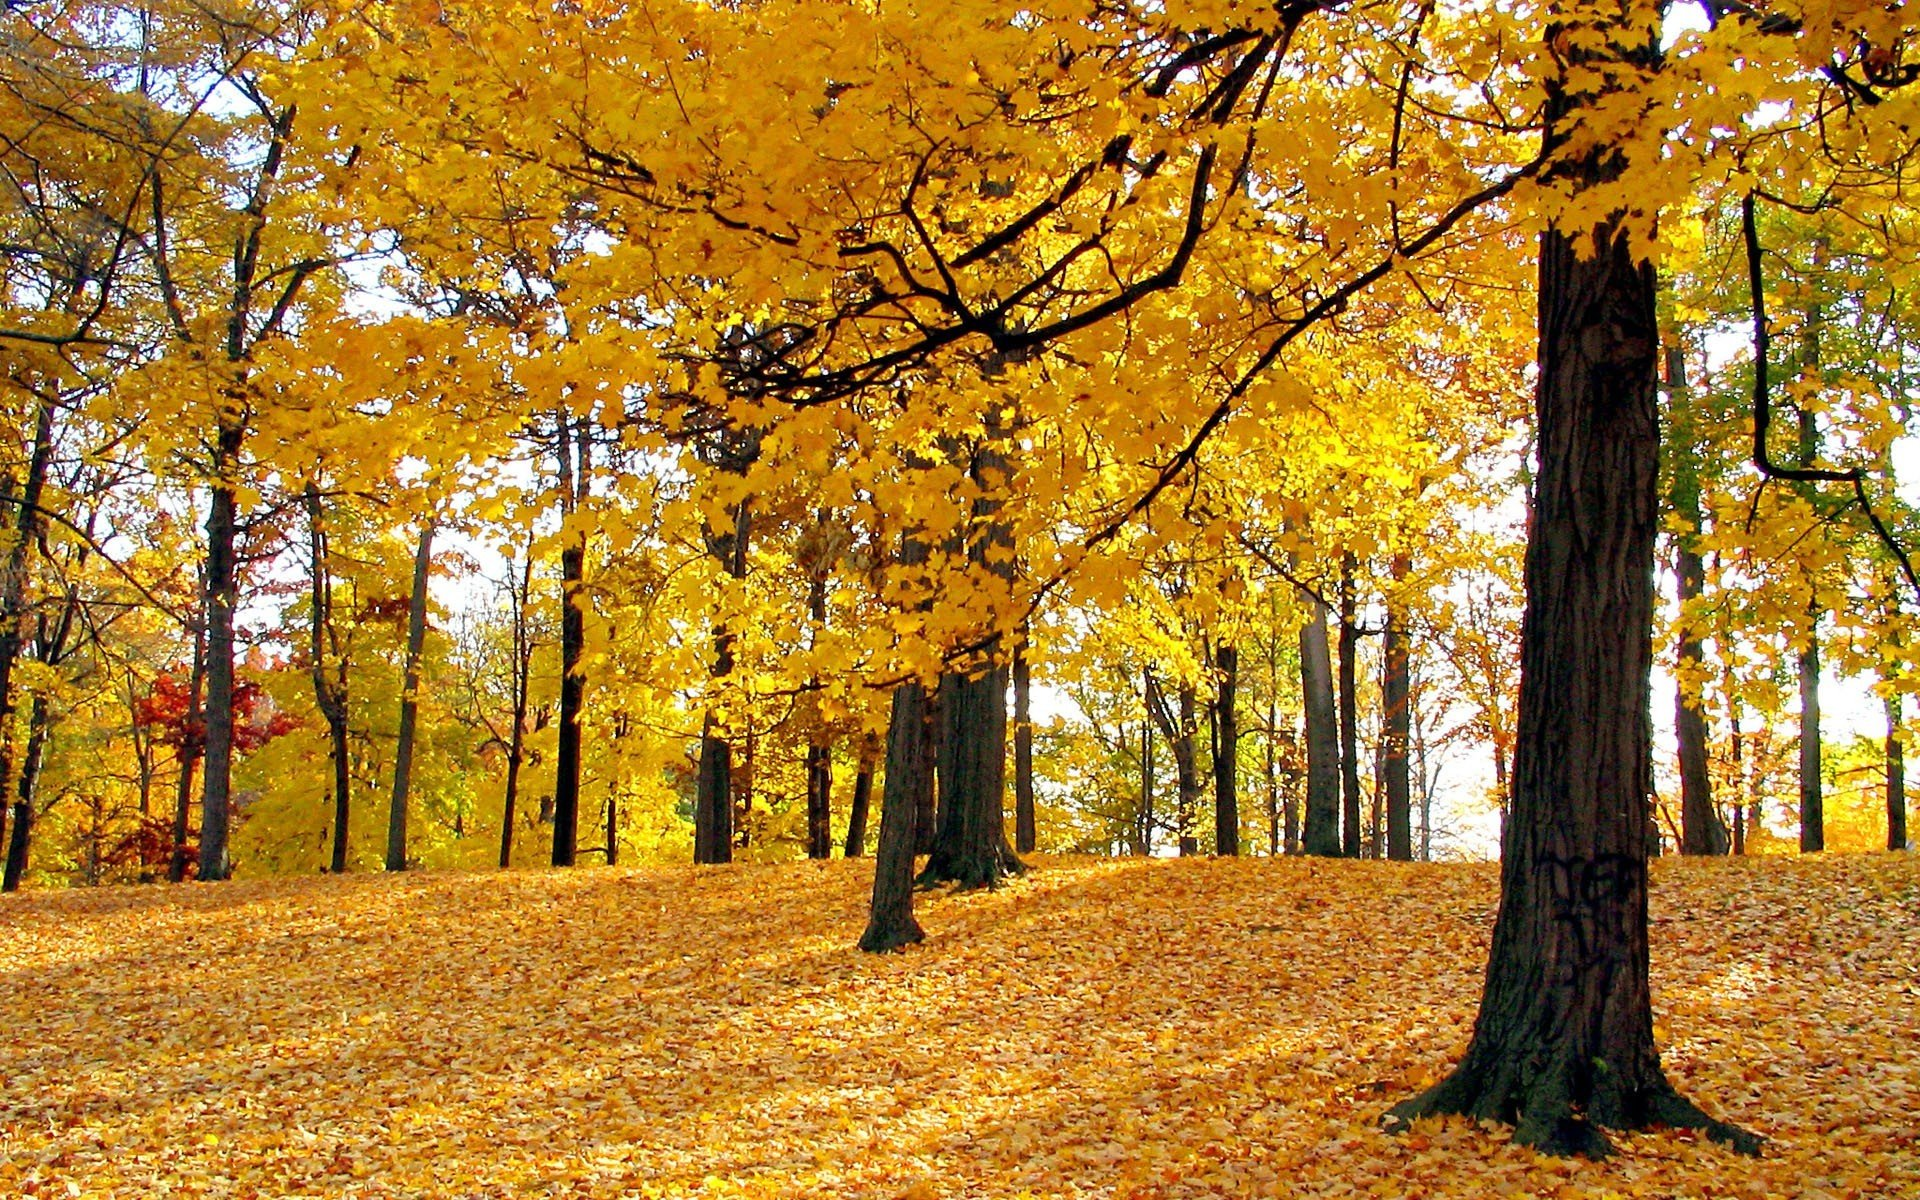 Fall Wallpaper Hd For Galaxy S4 Autumn In The Forest 16253 Hd Wallpaper